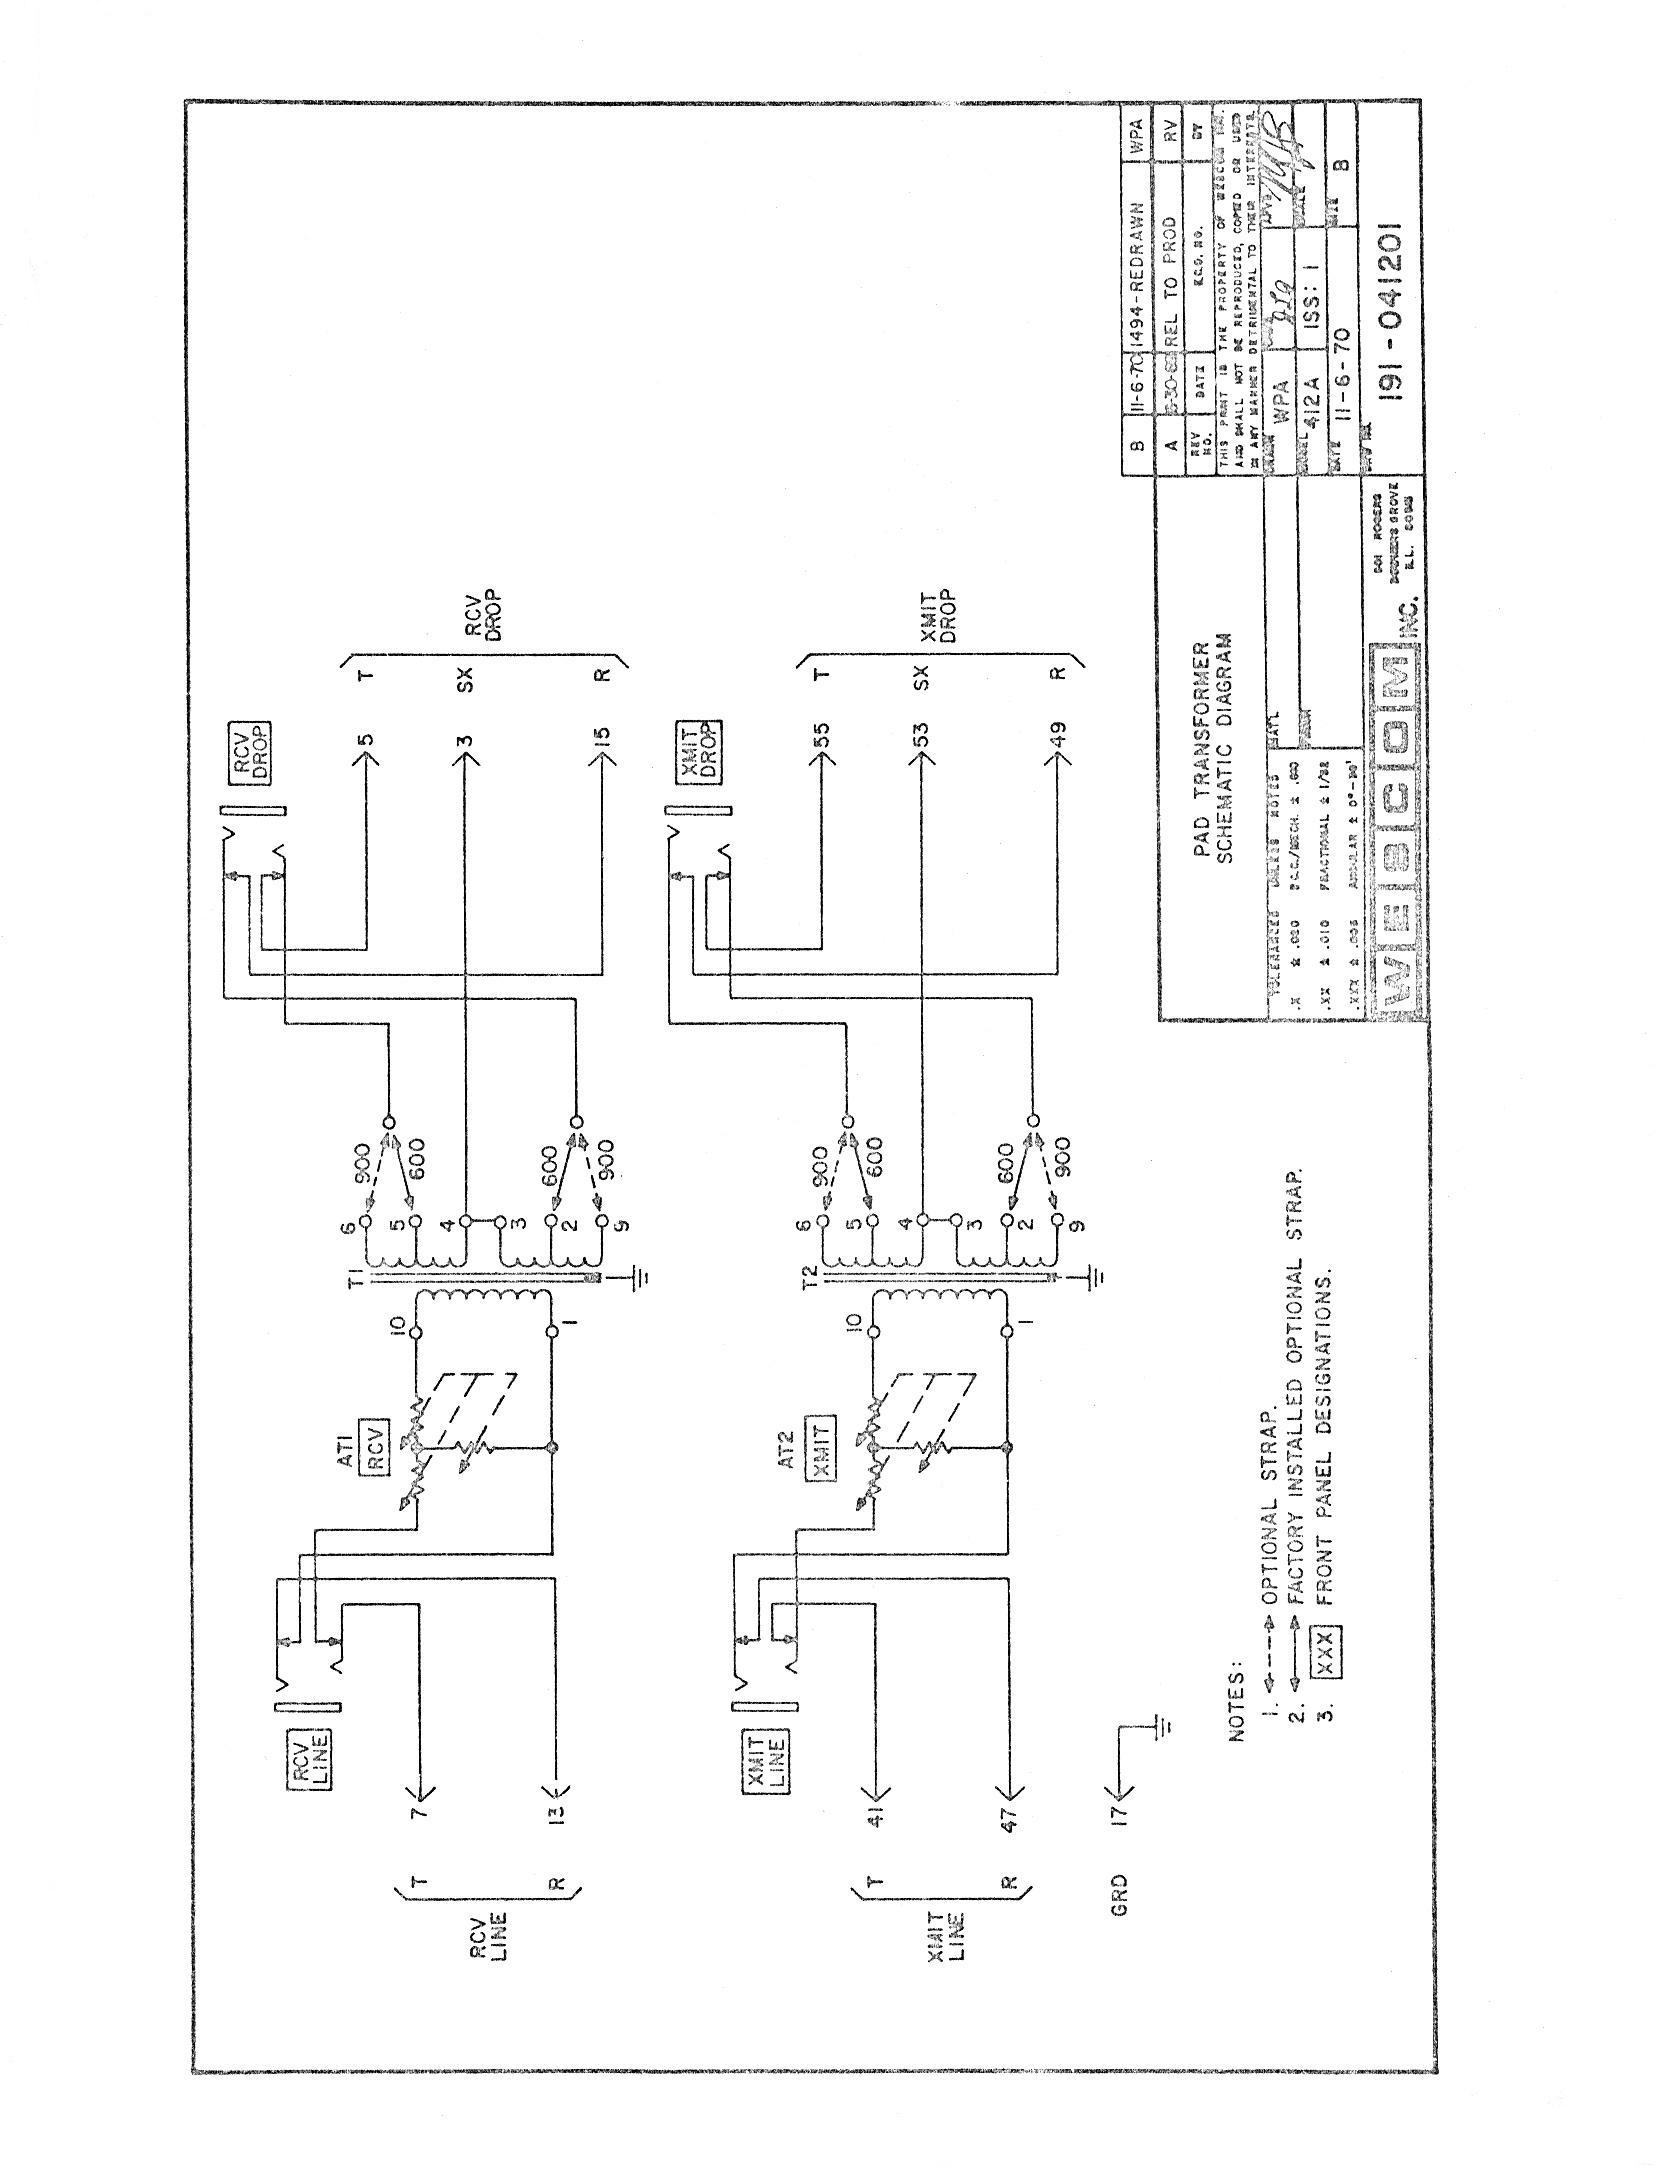 padmount transformer wiring diagram diagram data schema exppad mount transformer wiring diagram wiring diagram ge transformer wiring diagram 600v auto electrical wiring diagramrelated